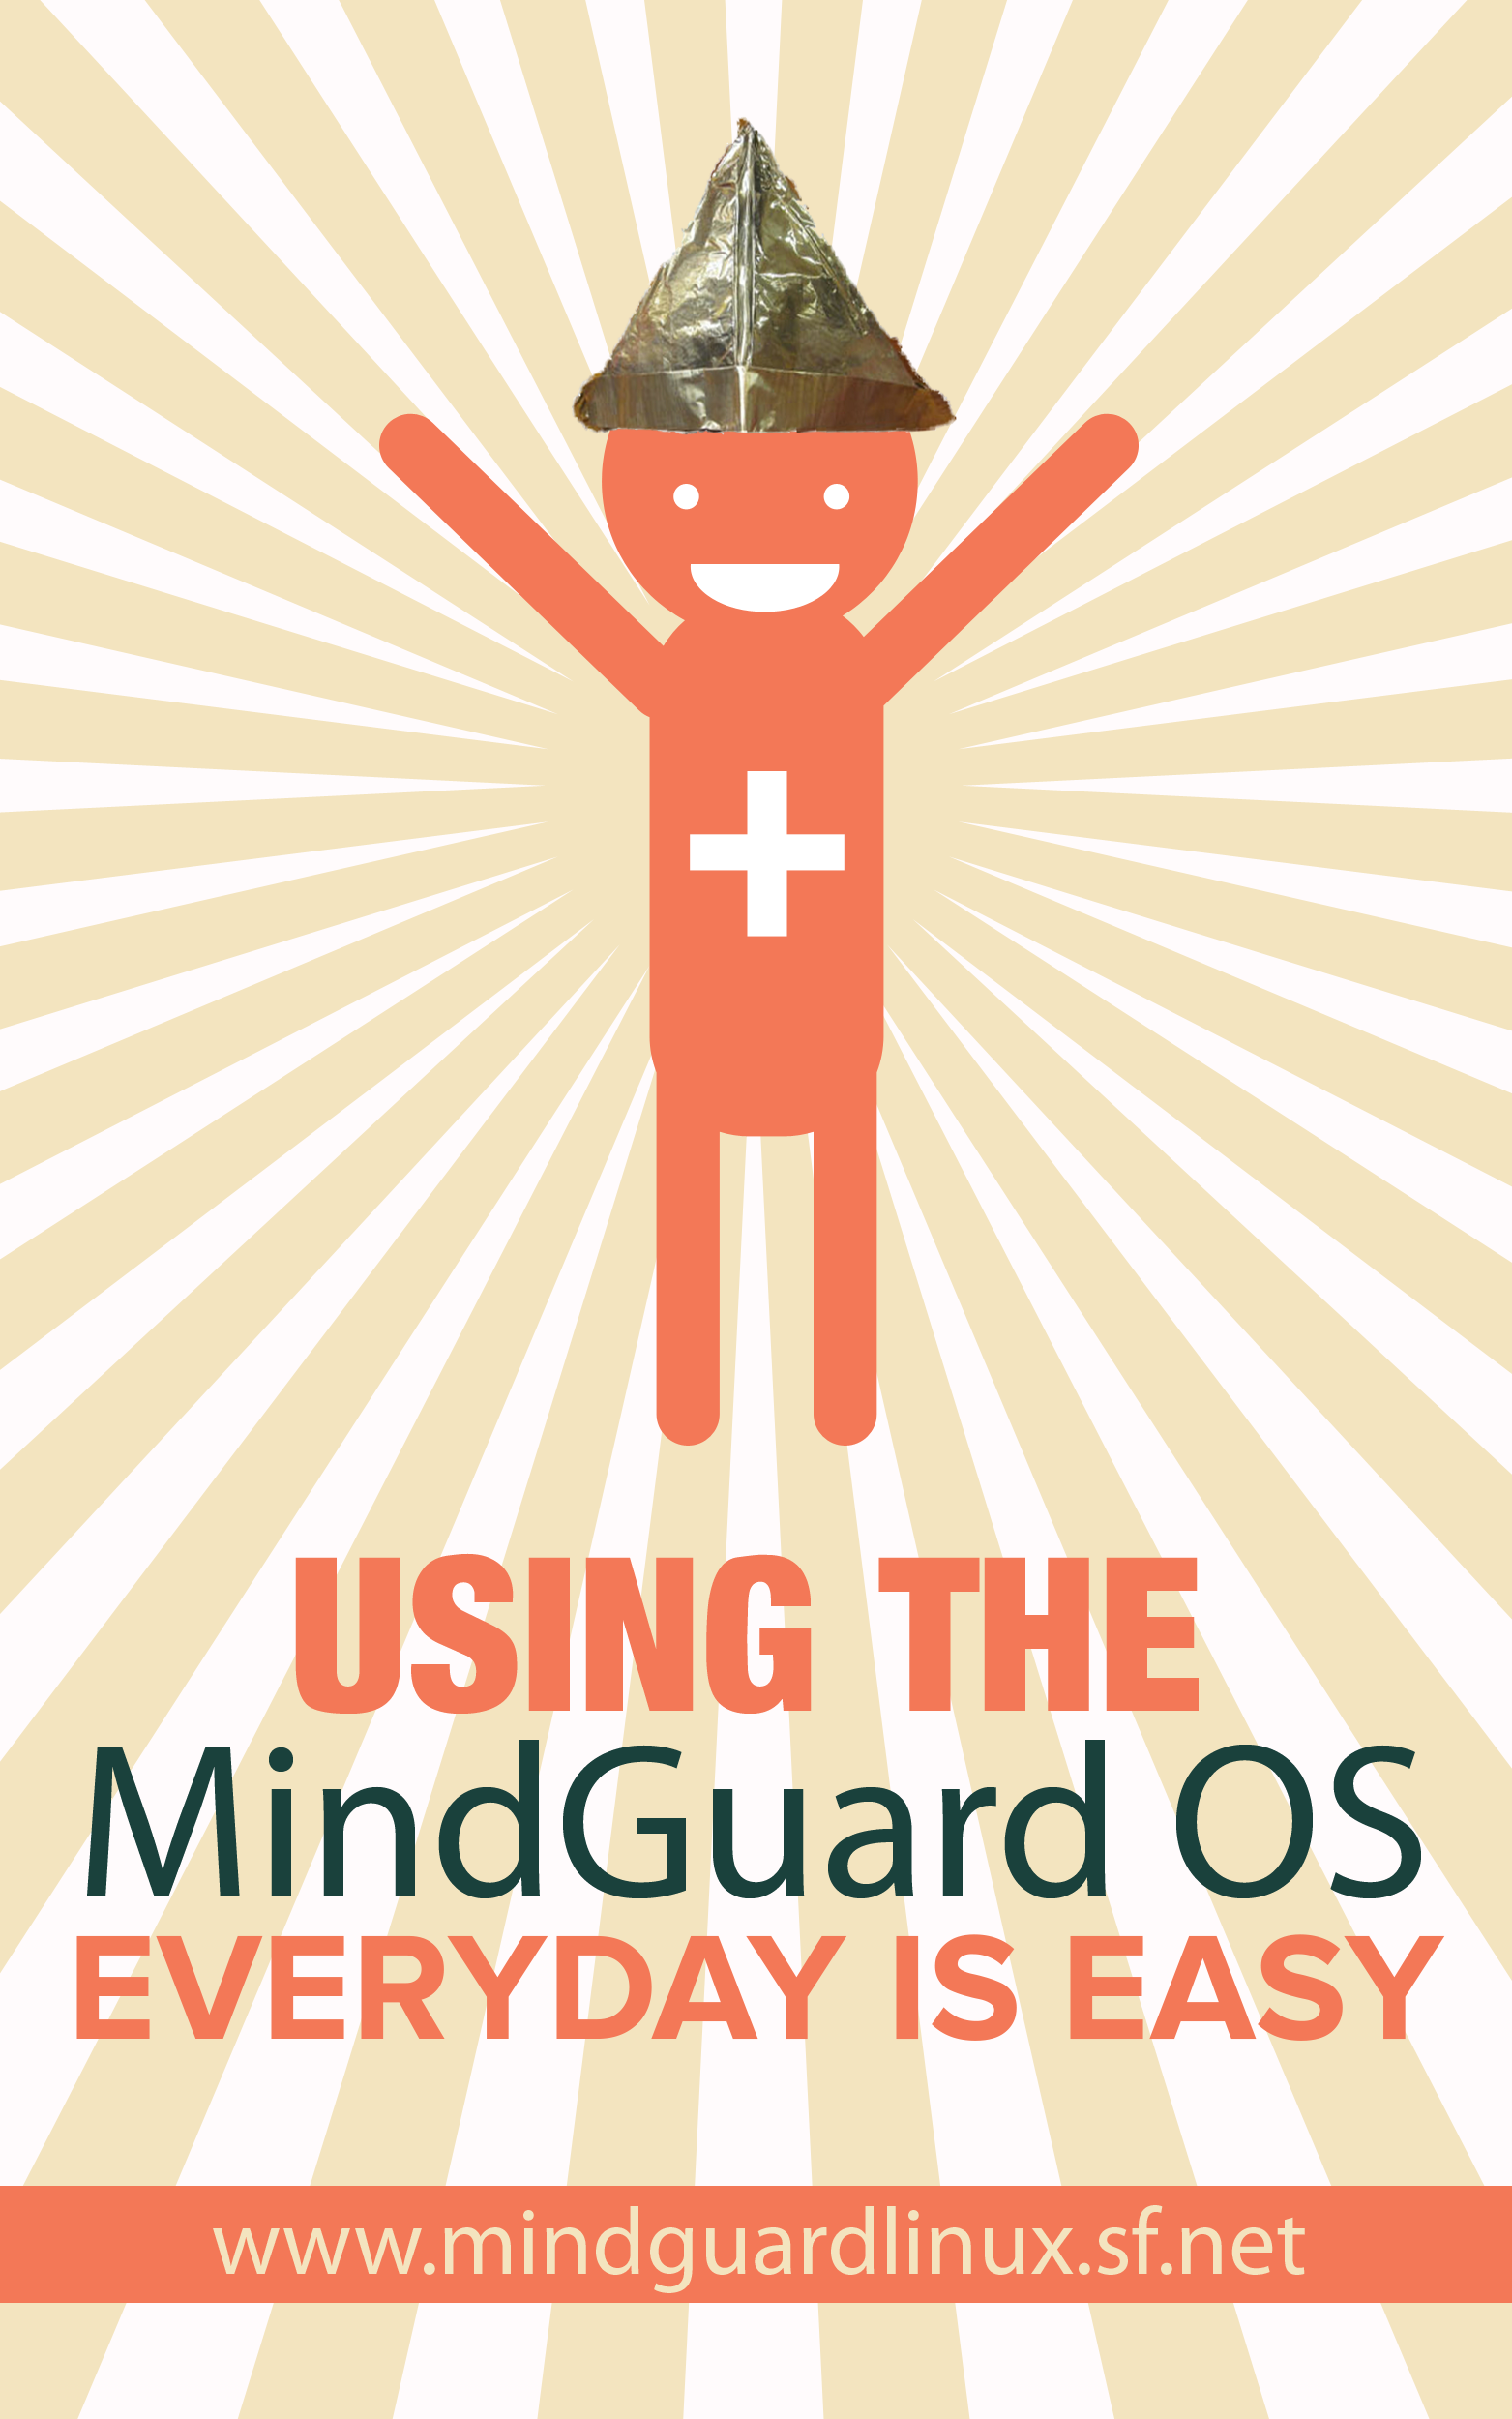 mind guard operating systems are easy to use, mind guard linux (for